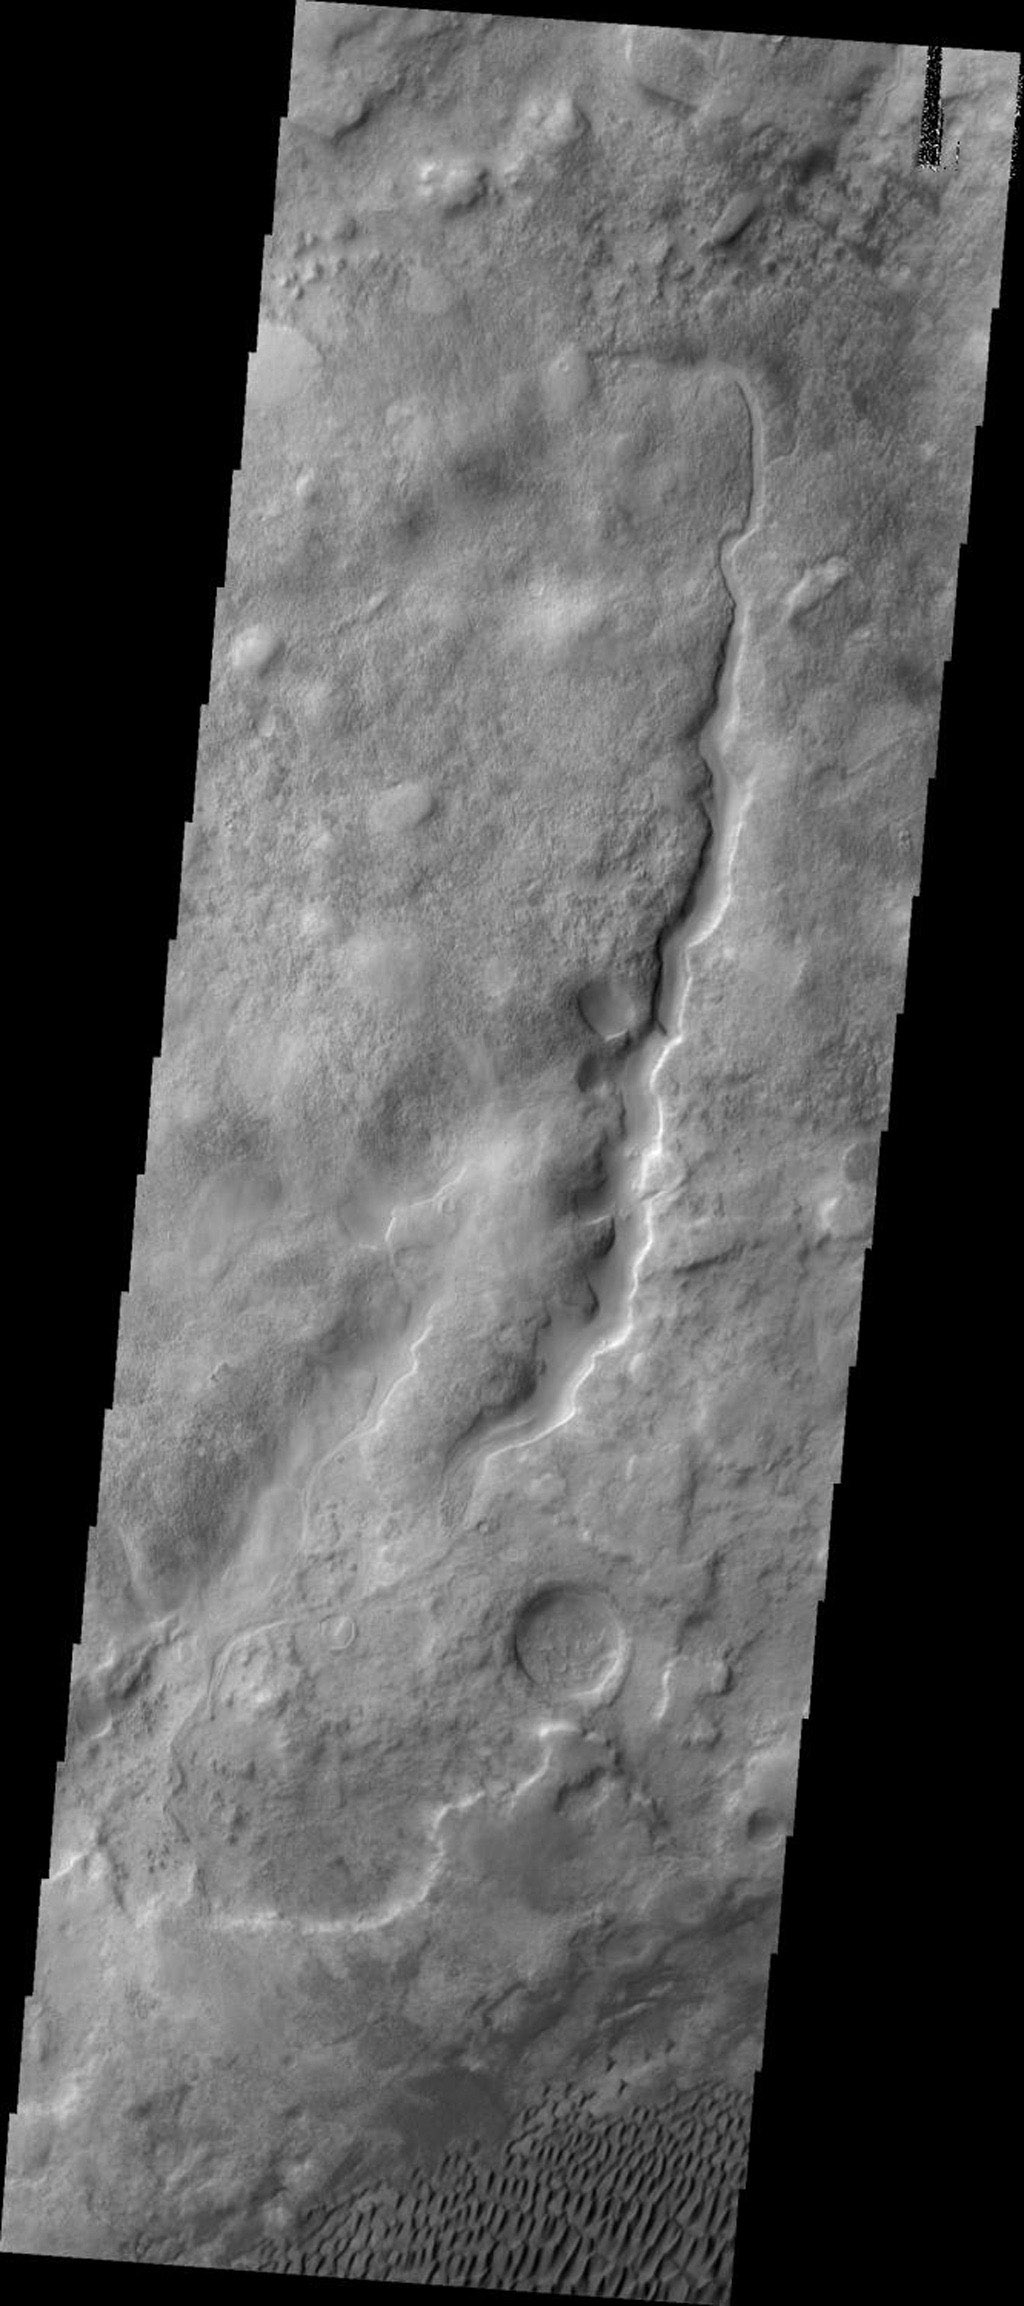 This image from NASA's Mars Odyssey shows small dunes located in the plains of Aonia Terra on Mars.